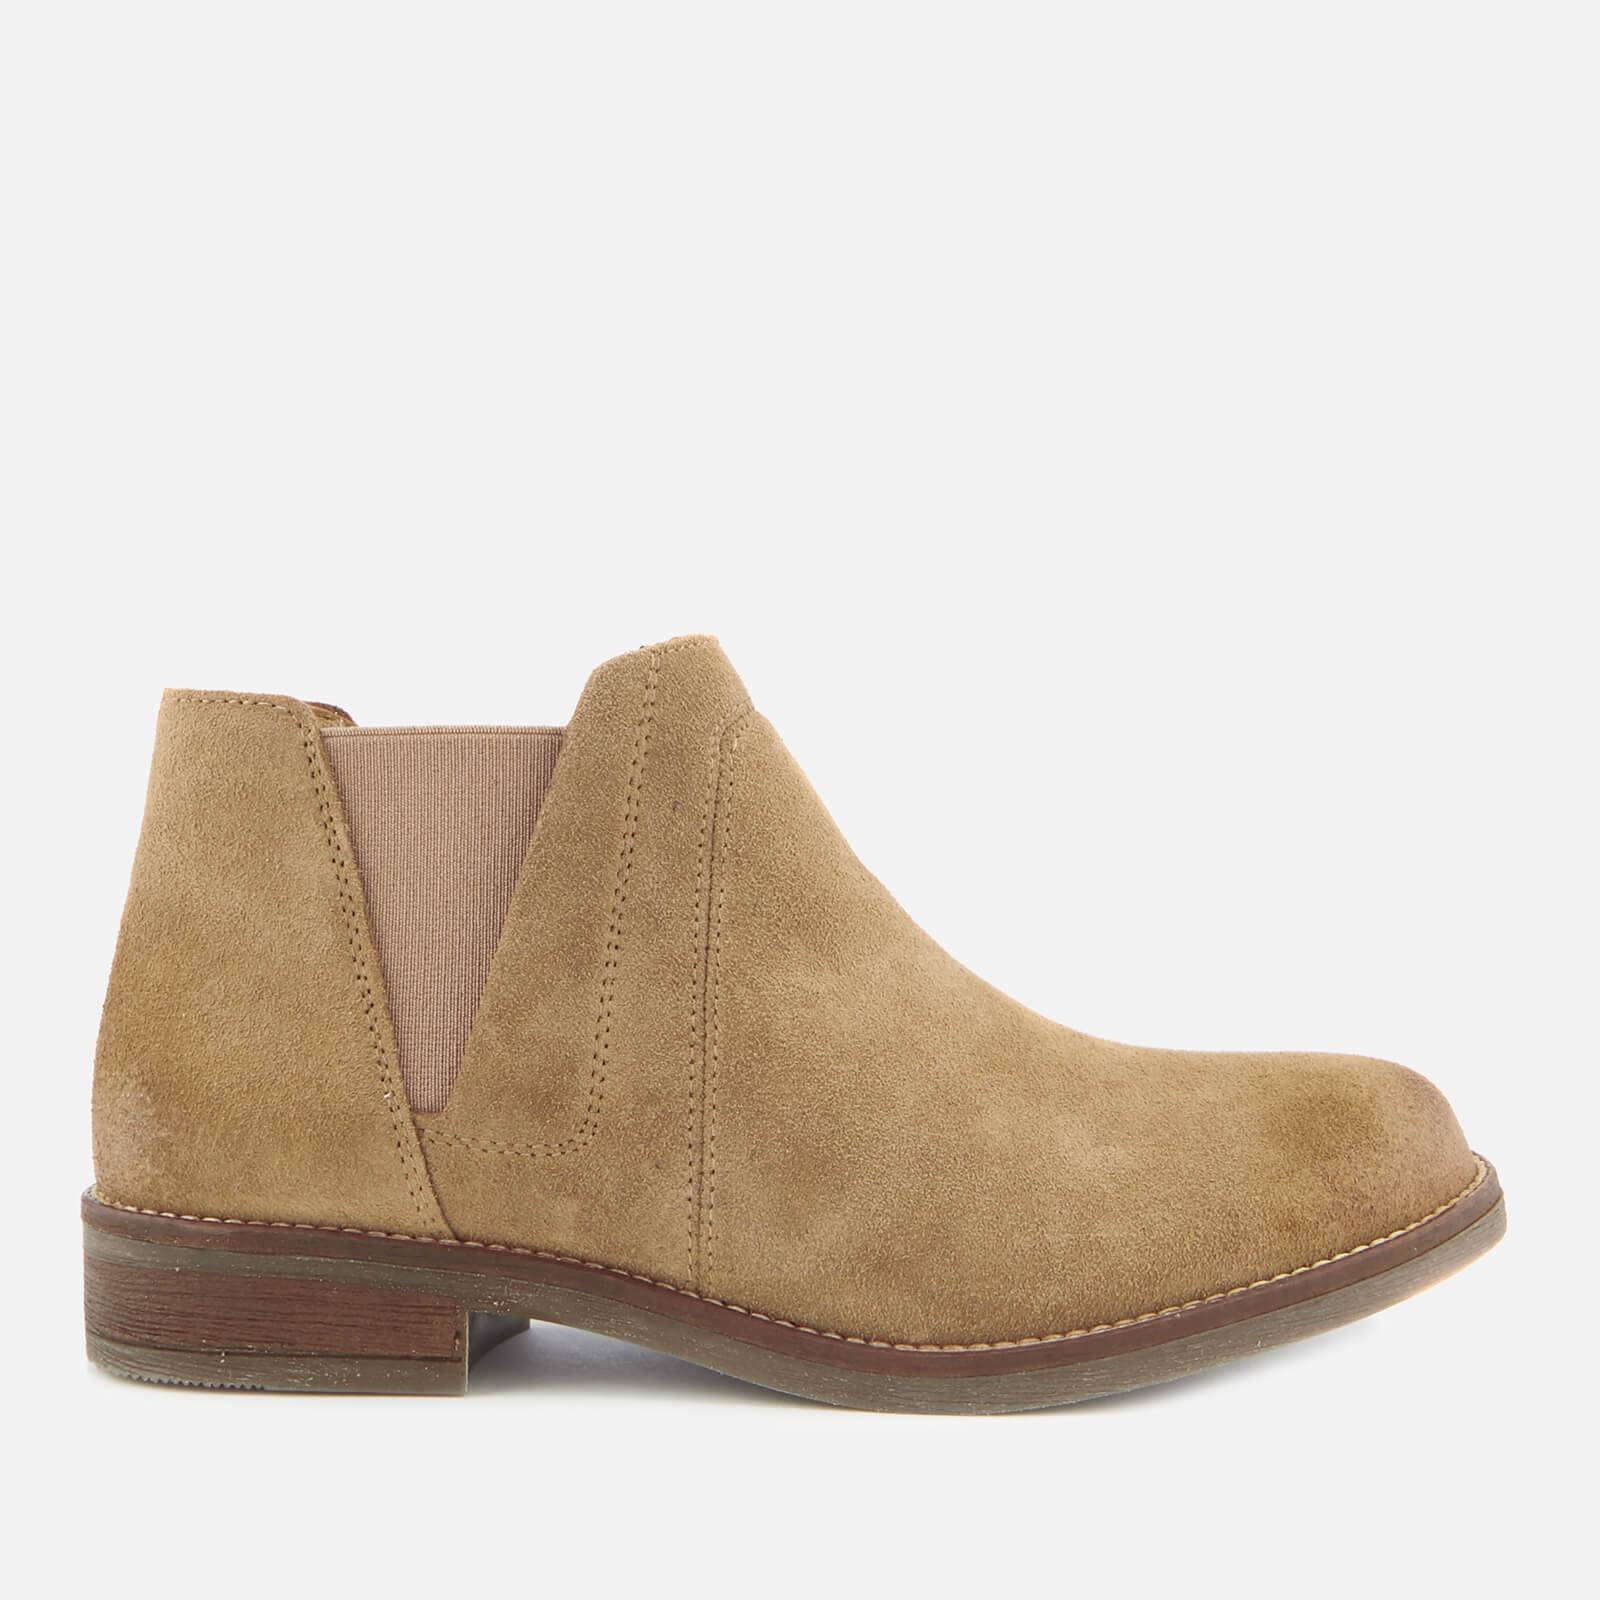 Clarks Women's Demi Beat Suede Ankle Boots - Sand - UK 5 - Beige